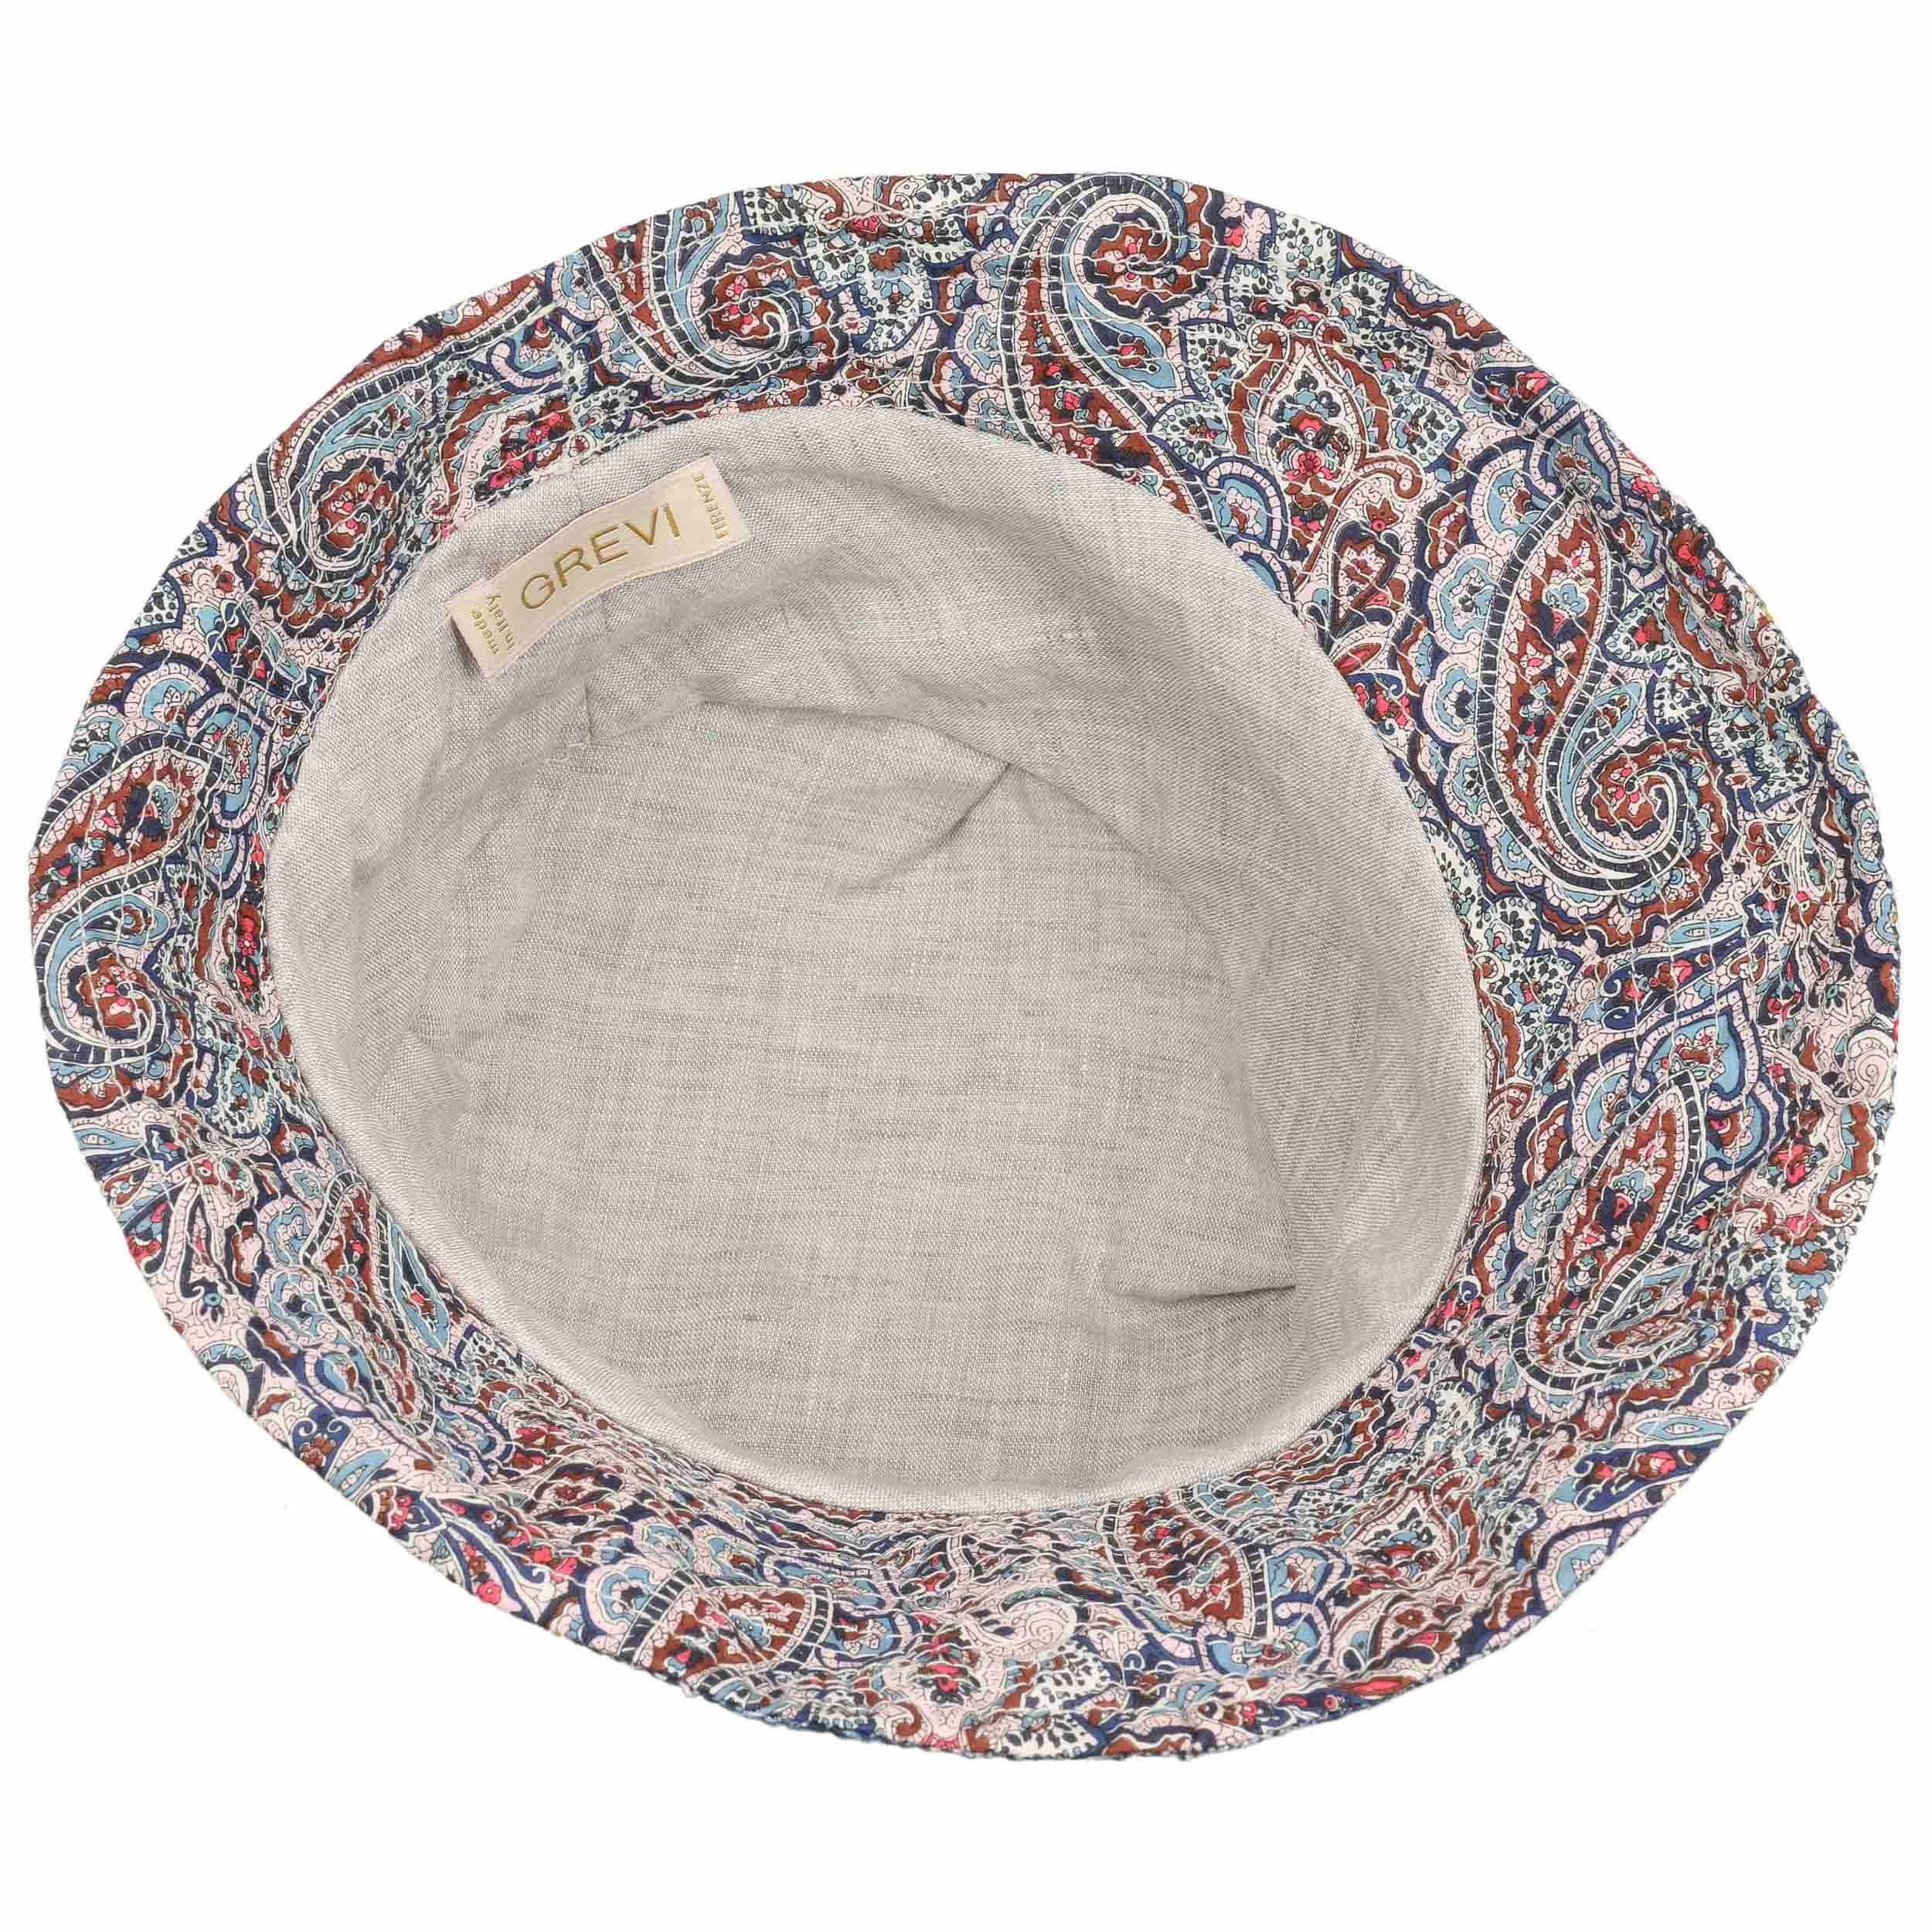 ... Cappello Cloche Cotton Patchwork by GREVI - blu 3 ... d82842aad6eb